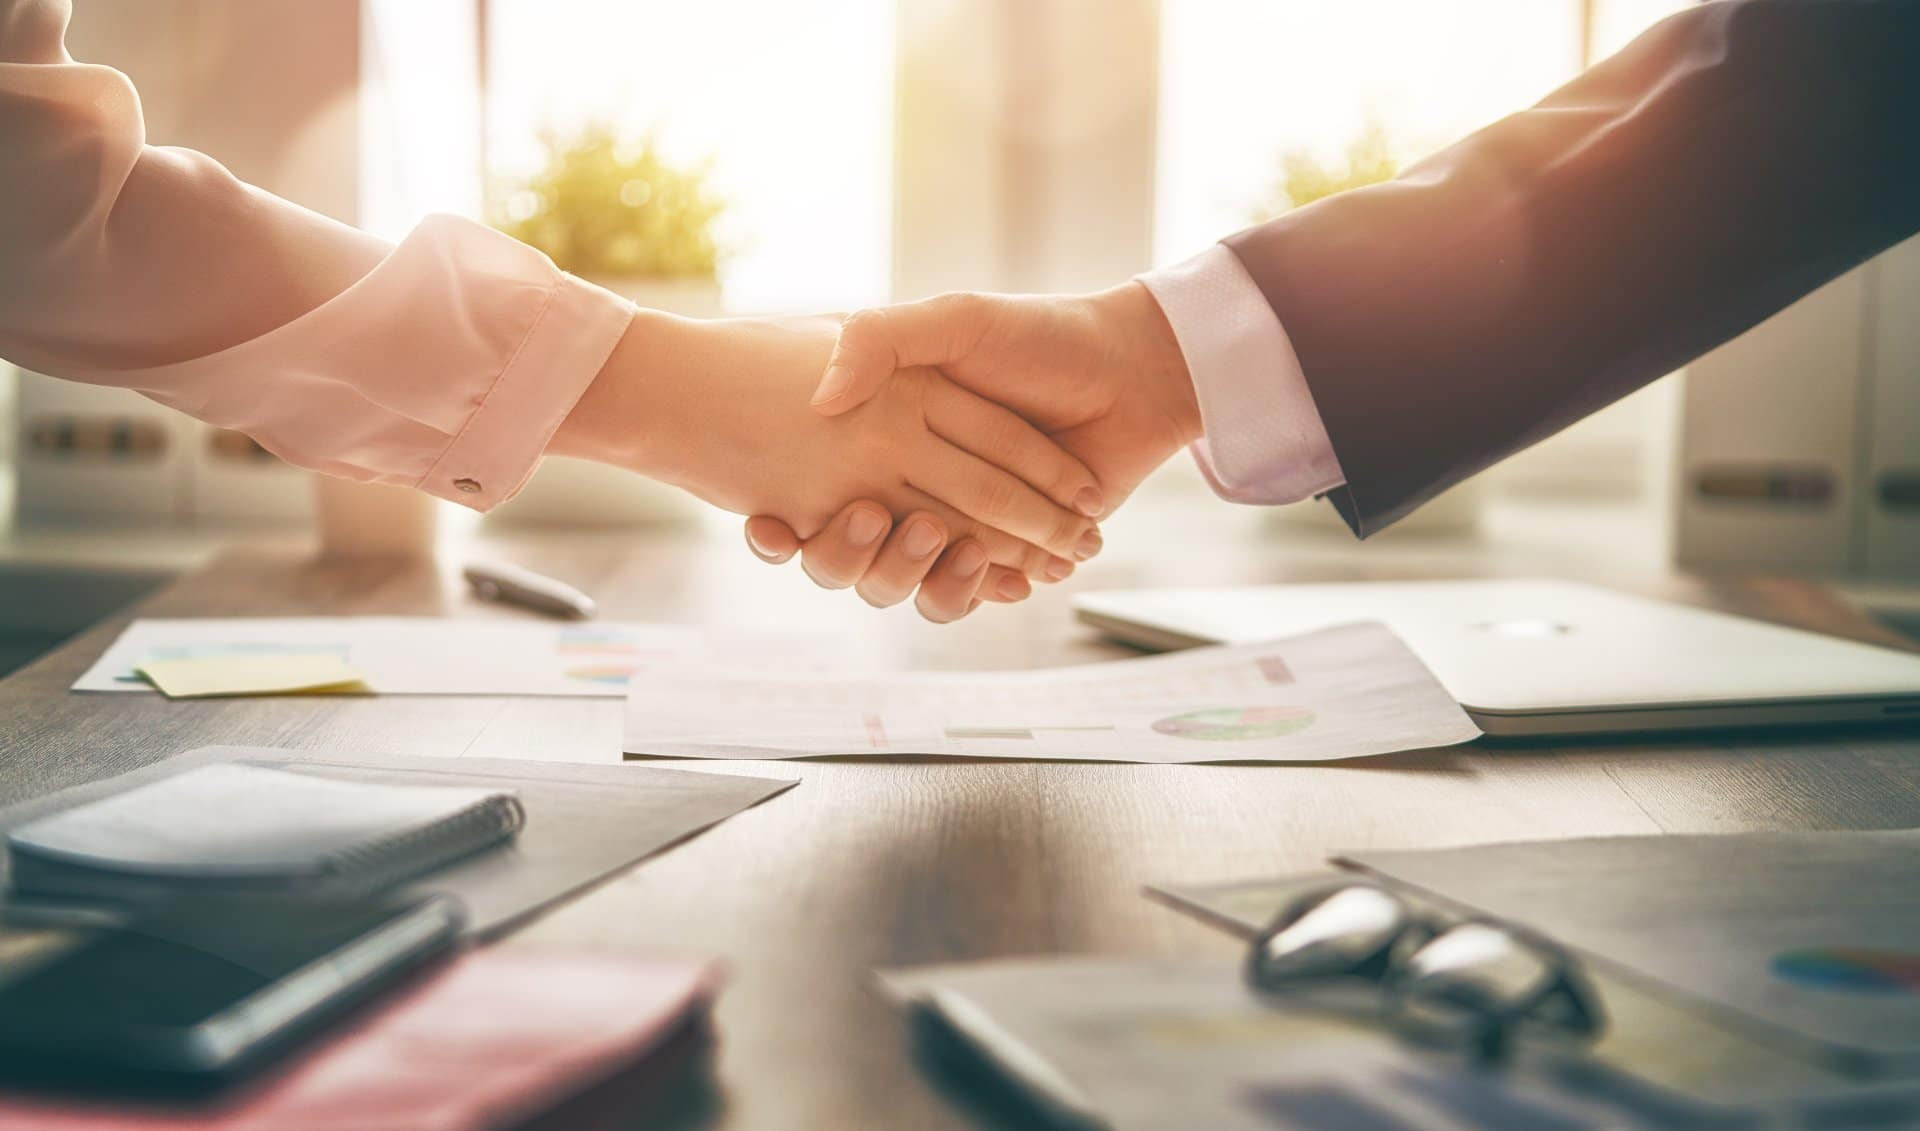 cpa shaking hands with small business owner